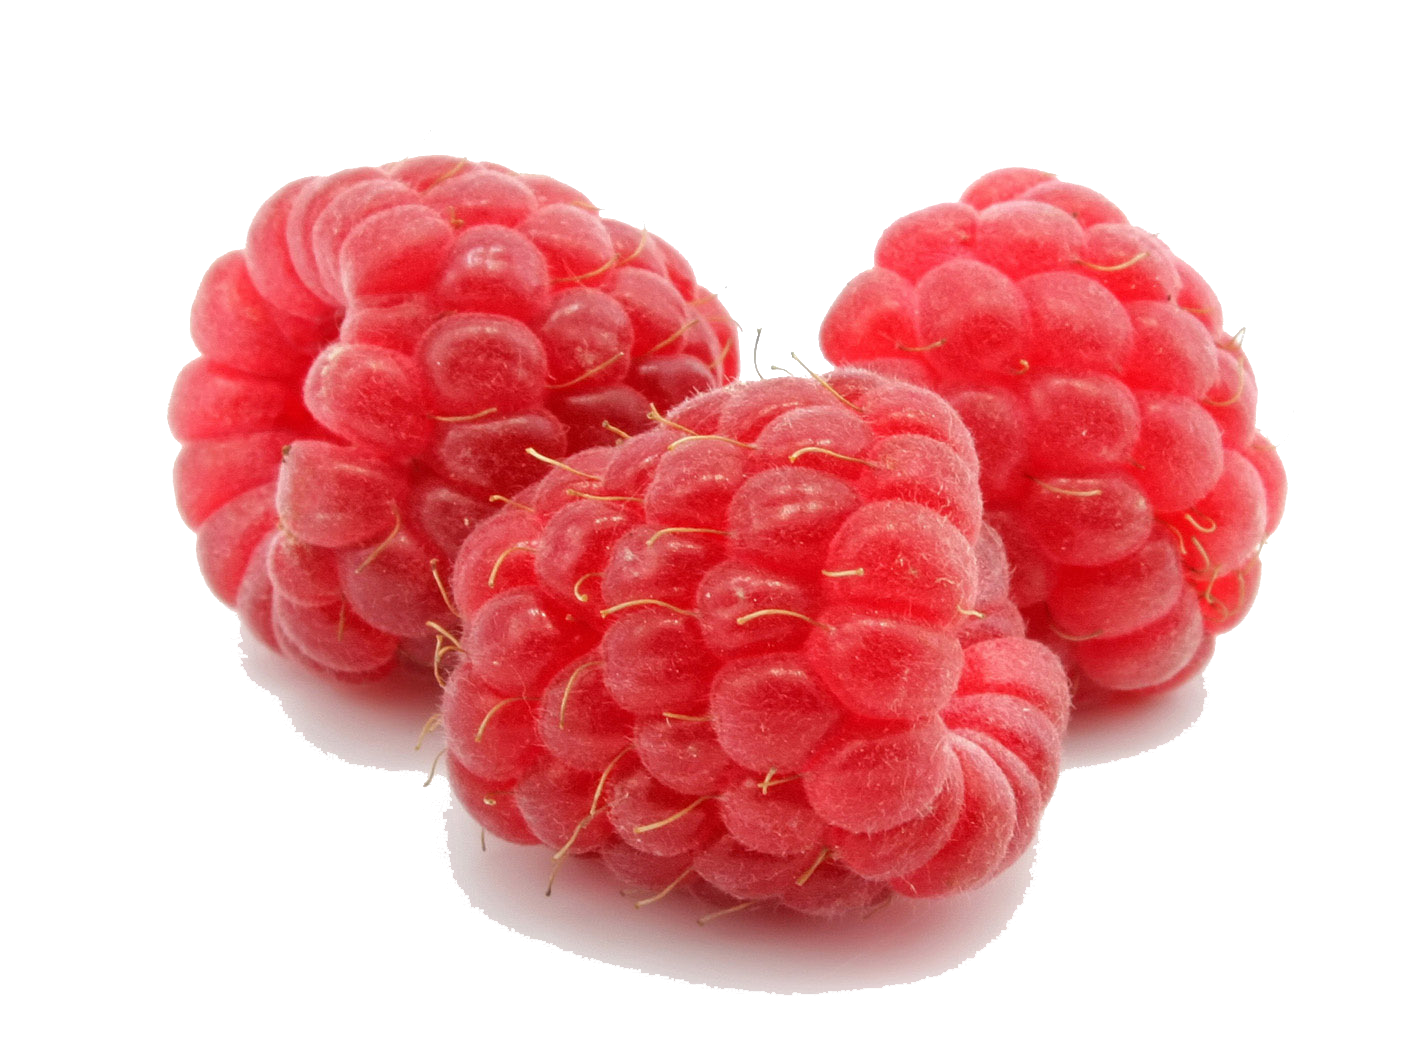 Raspberry PNG Images Transparent Free Download.